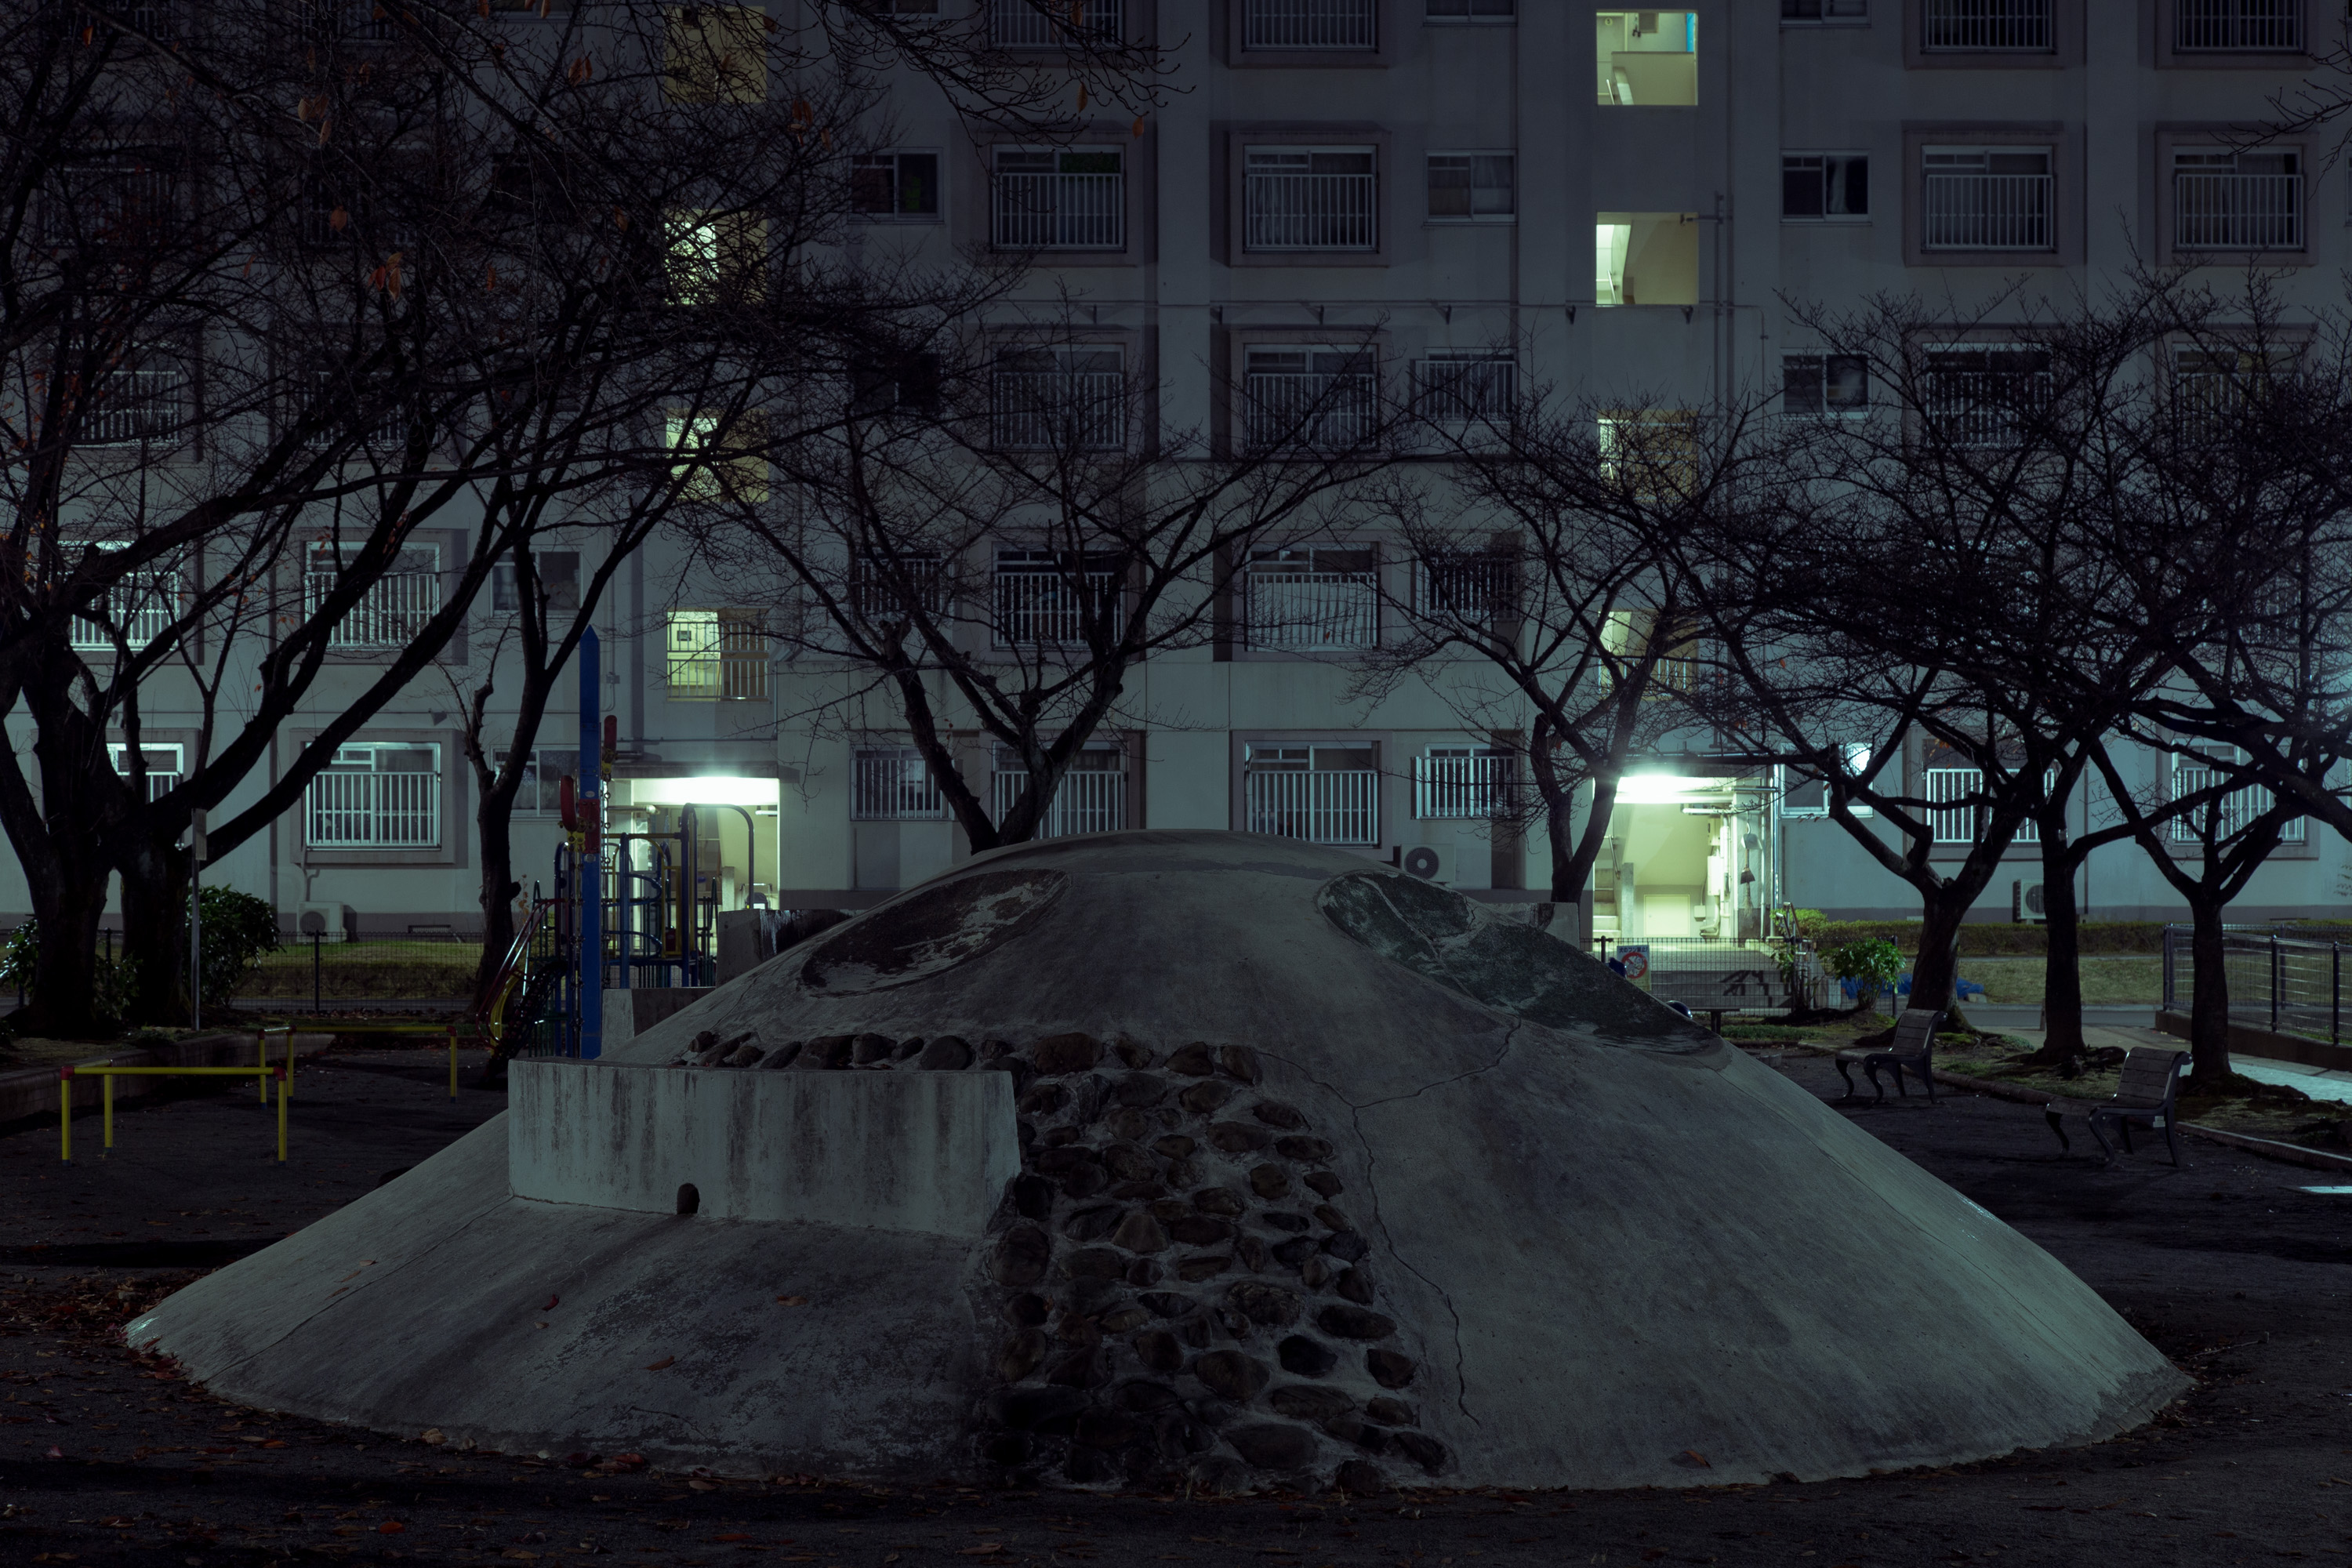 Magnificent Night Pictures of Forgotten Buildings